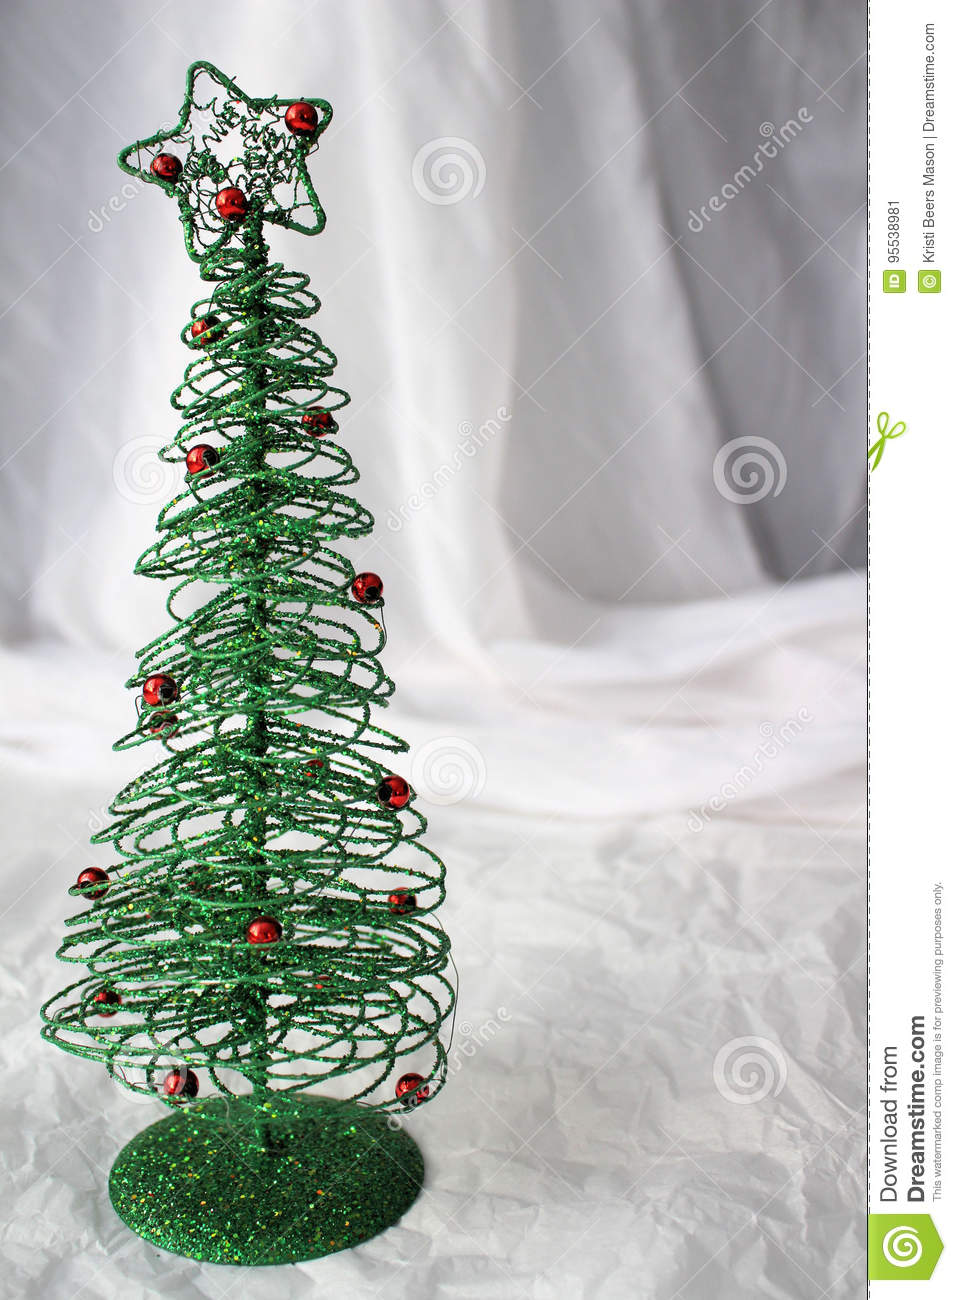 Draht Weihnachtsbaum Stock Images - Download 296 Photos